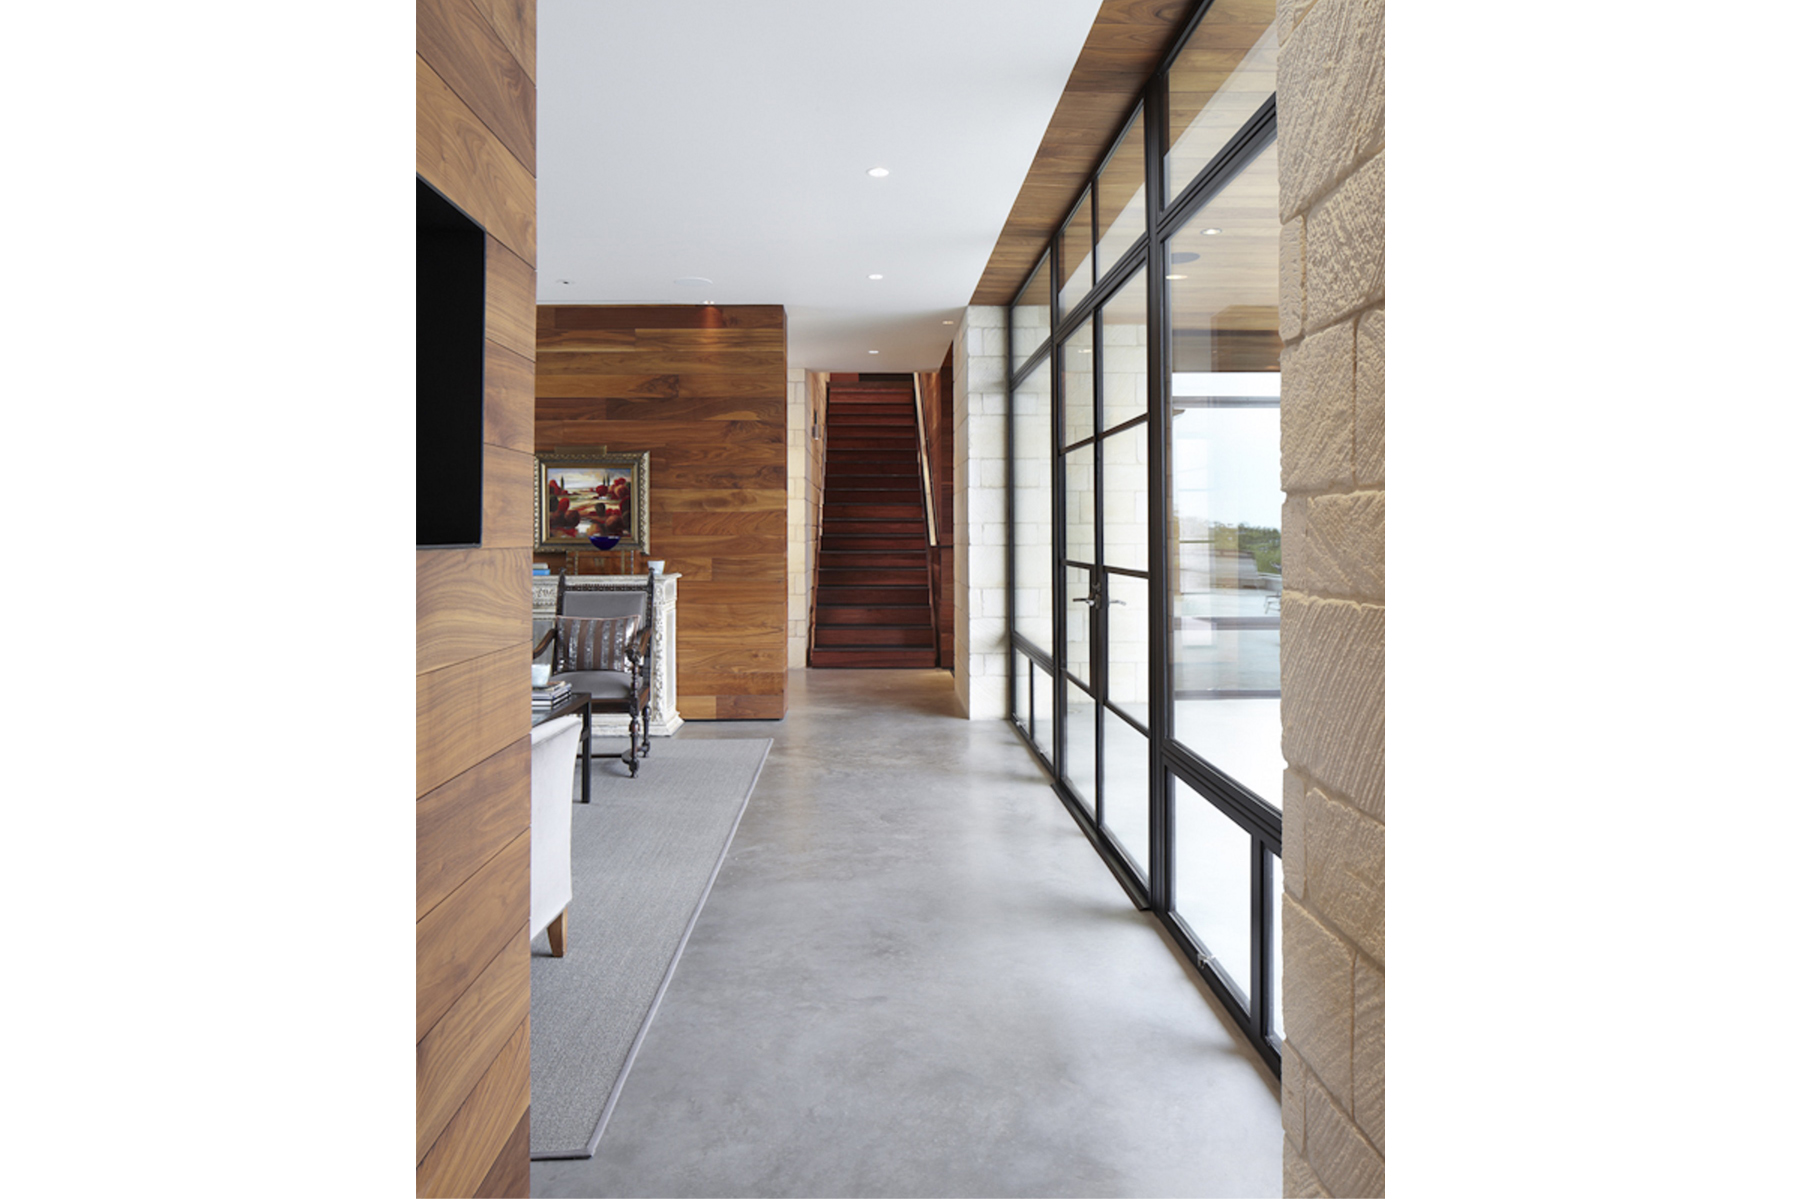 hill-country-residence-hallway1